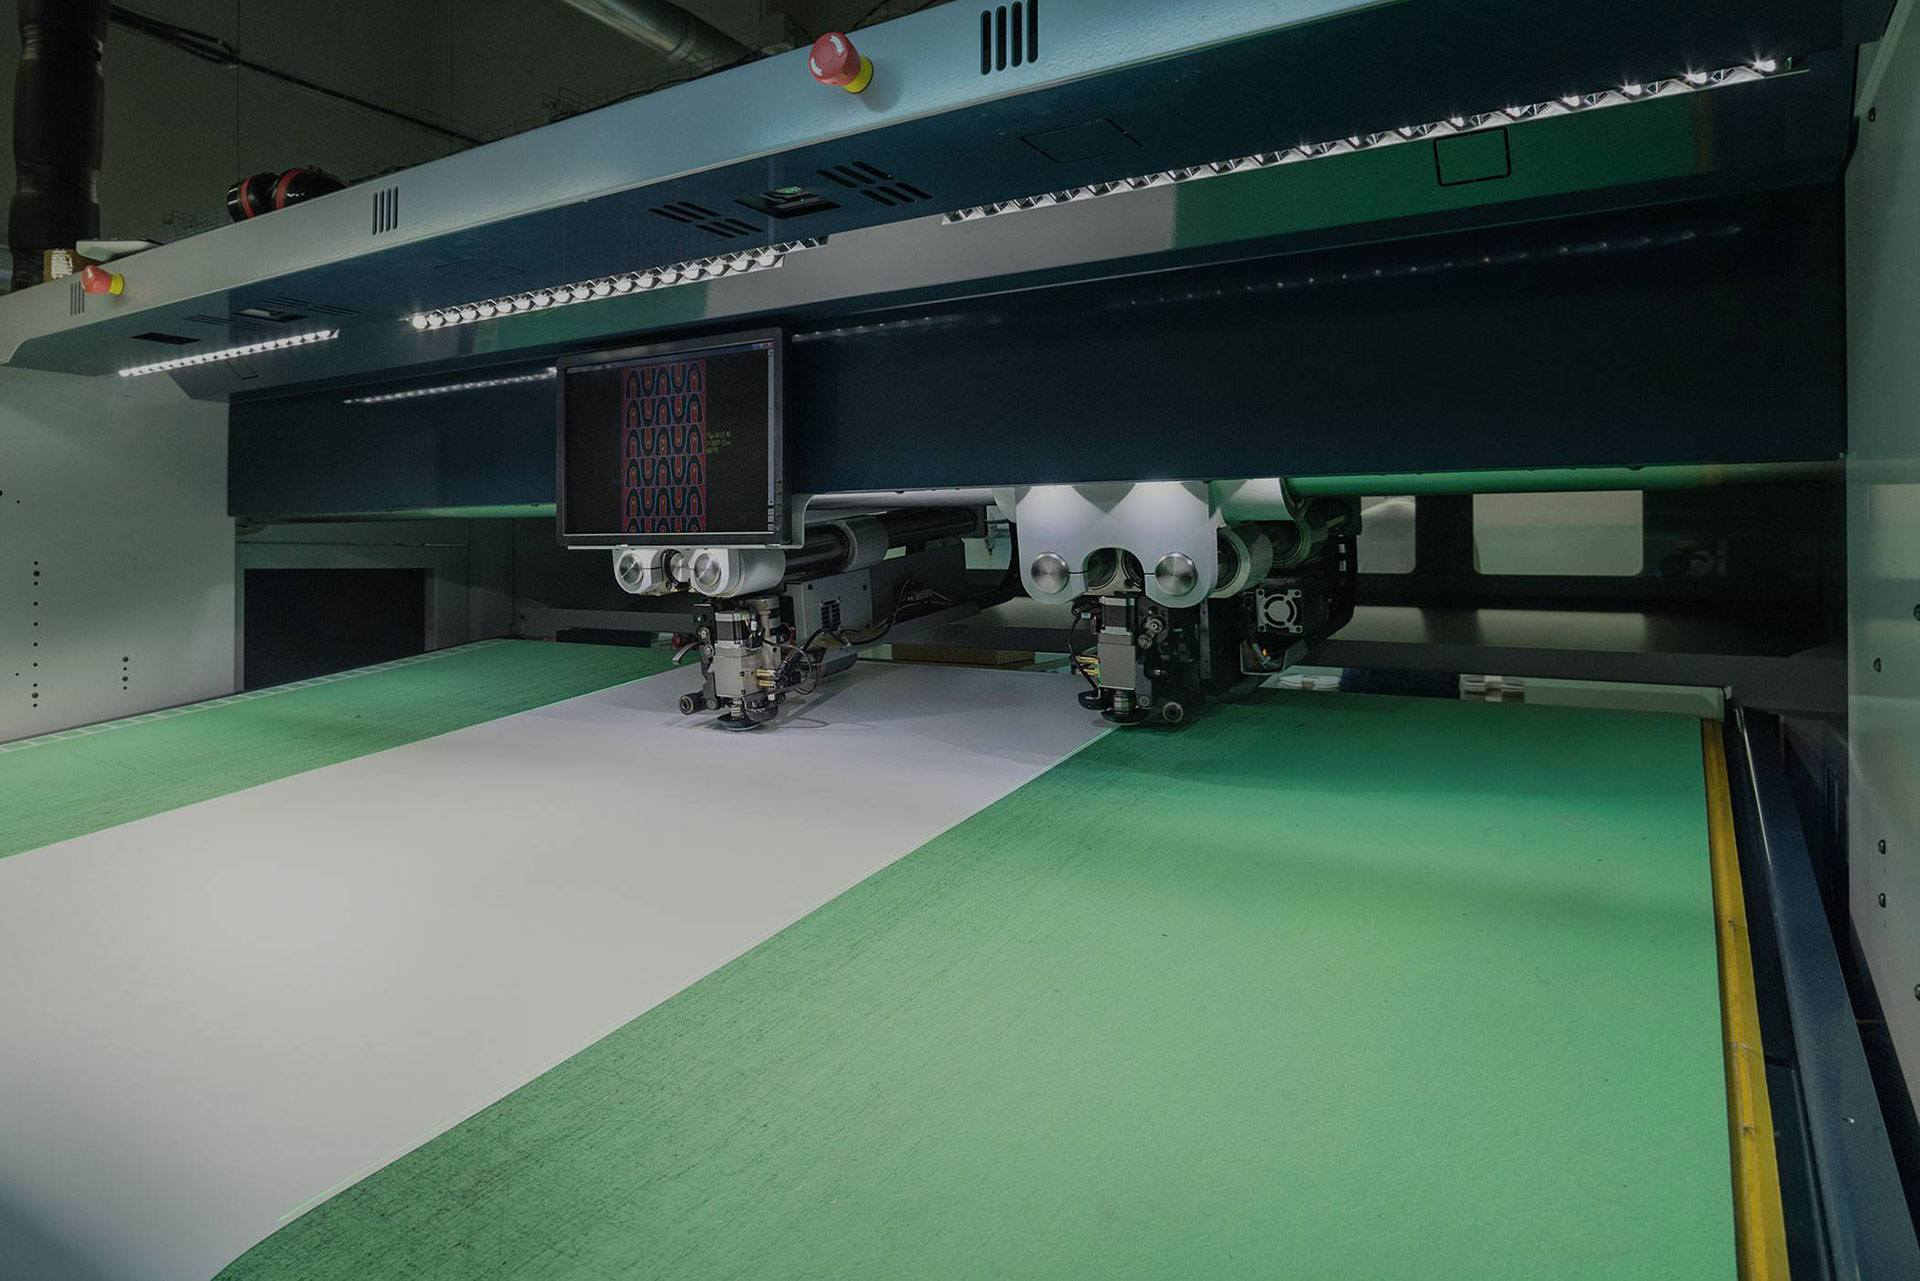 Industrial Sewing, Spreading, Cutting of Technical Soft Goods and Apparel